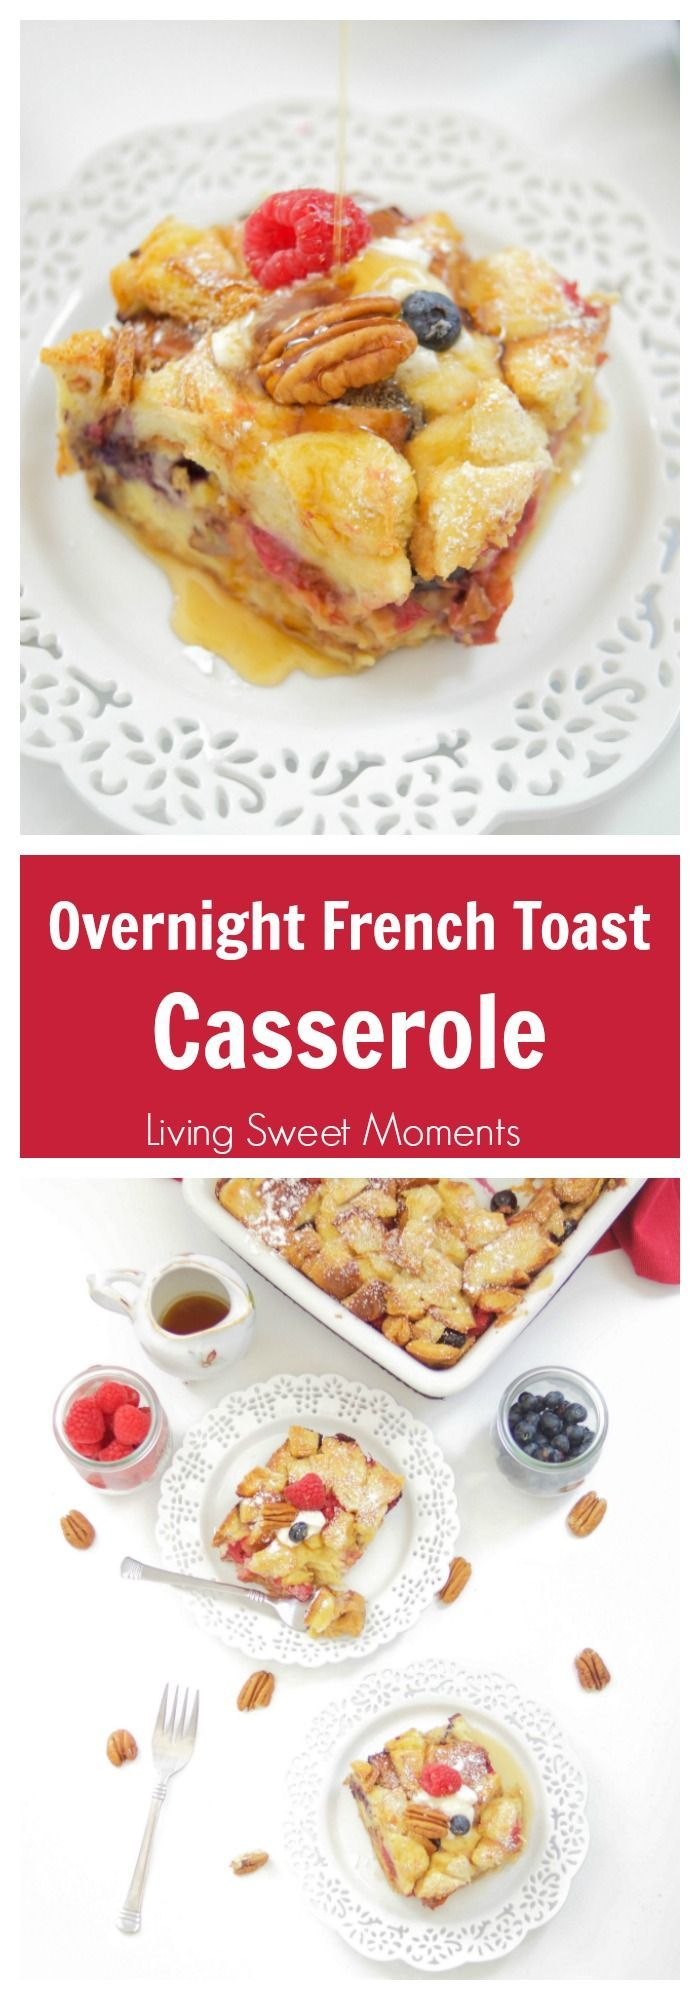 This delicious Overnight French Toast Casserole recipe is stuffed with maple peanut butter and berries. Perfect for brunch, breakfast, or even dessert. Yum! #ad